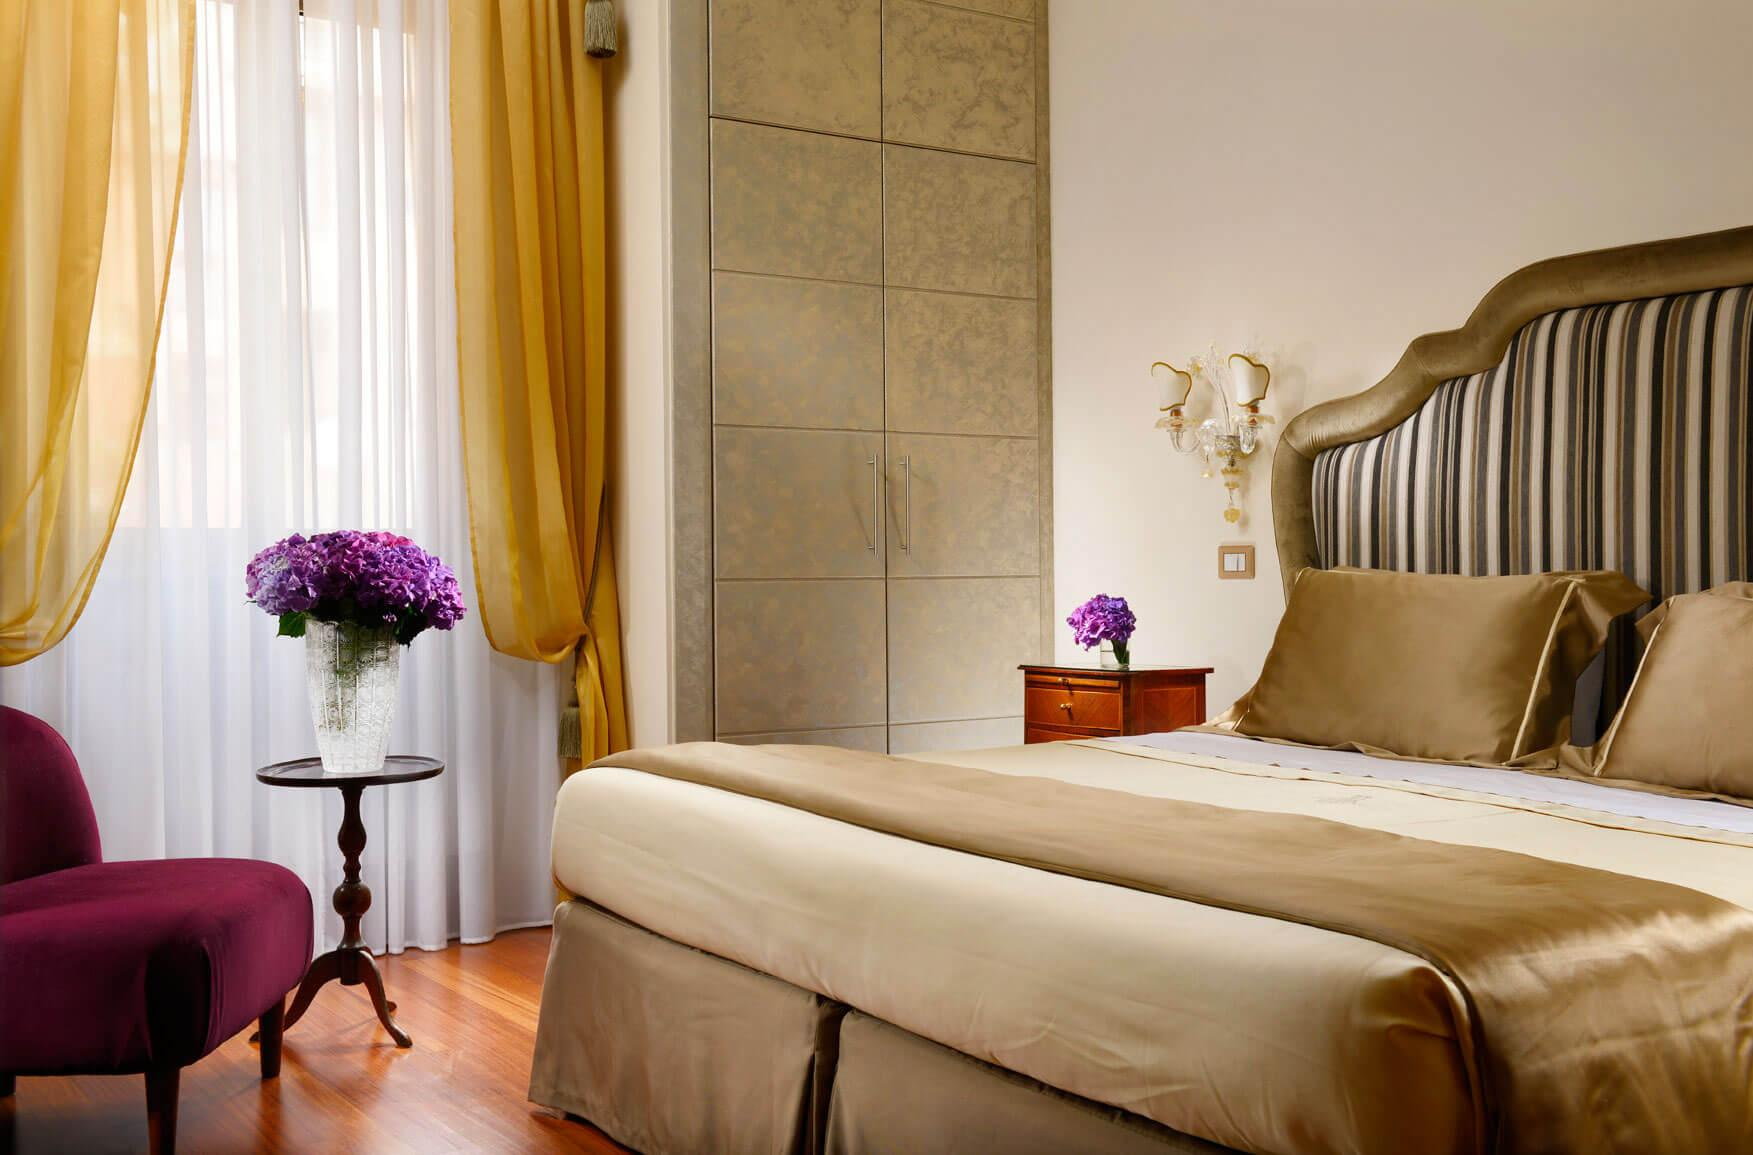 Luxurious Rooms & Hotel Forum - New Superior Room